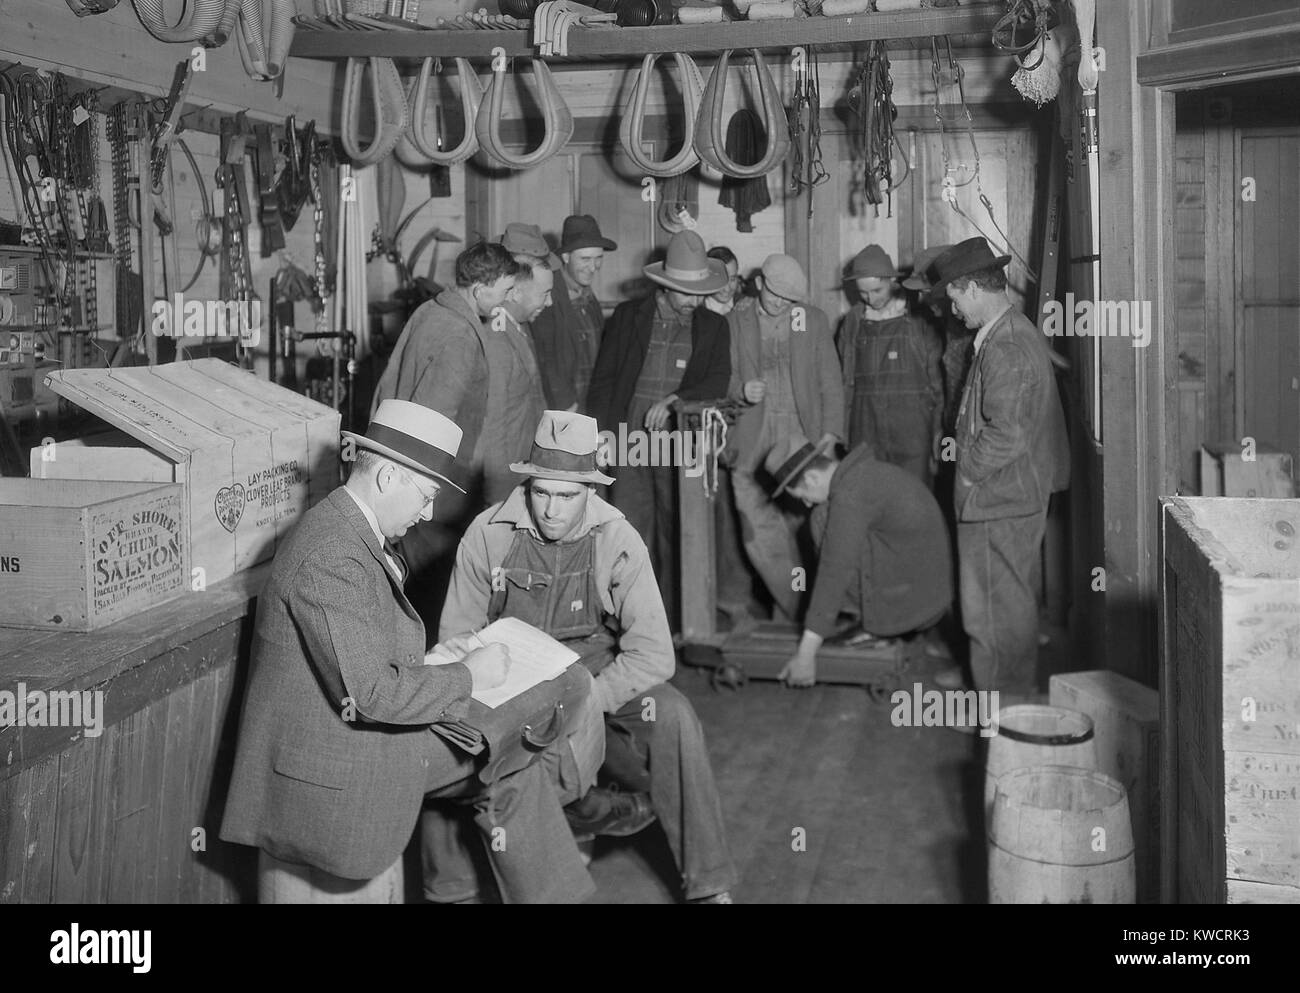 Applicants for jobs on TVA's Norris Dam were conducted at Stiner's Store, Lead Mine Bend, TN. In the background, - Stock Image